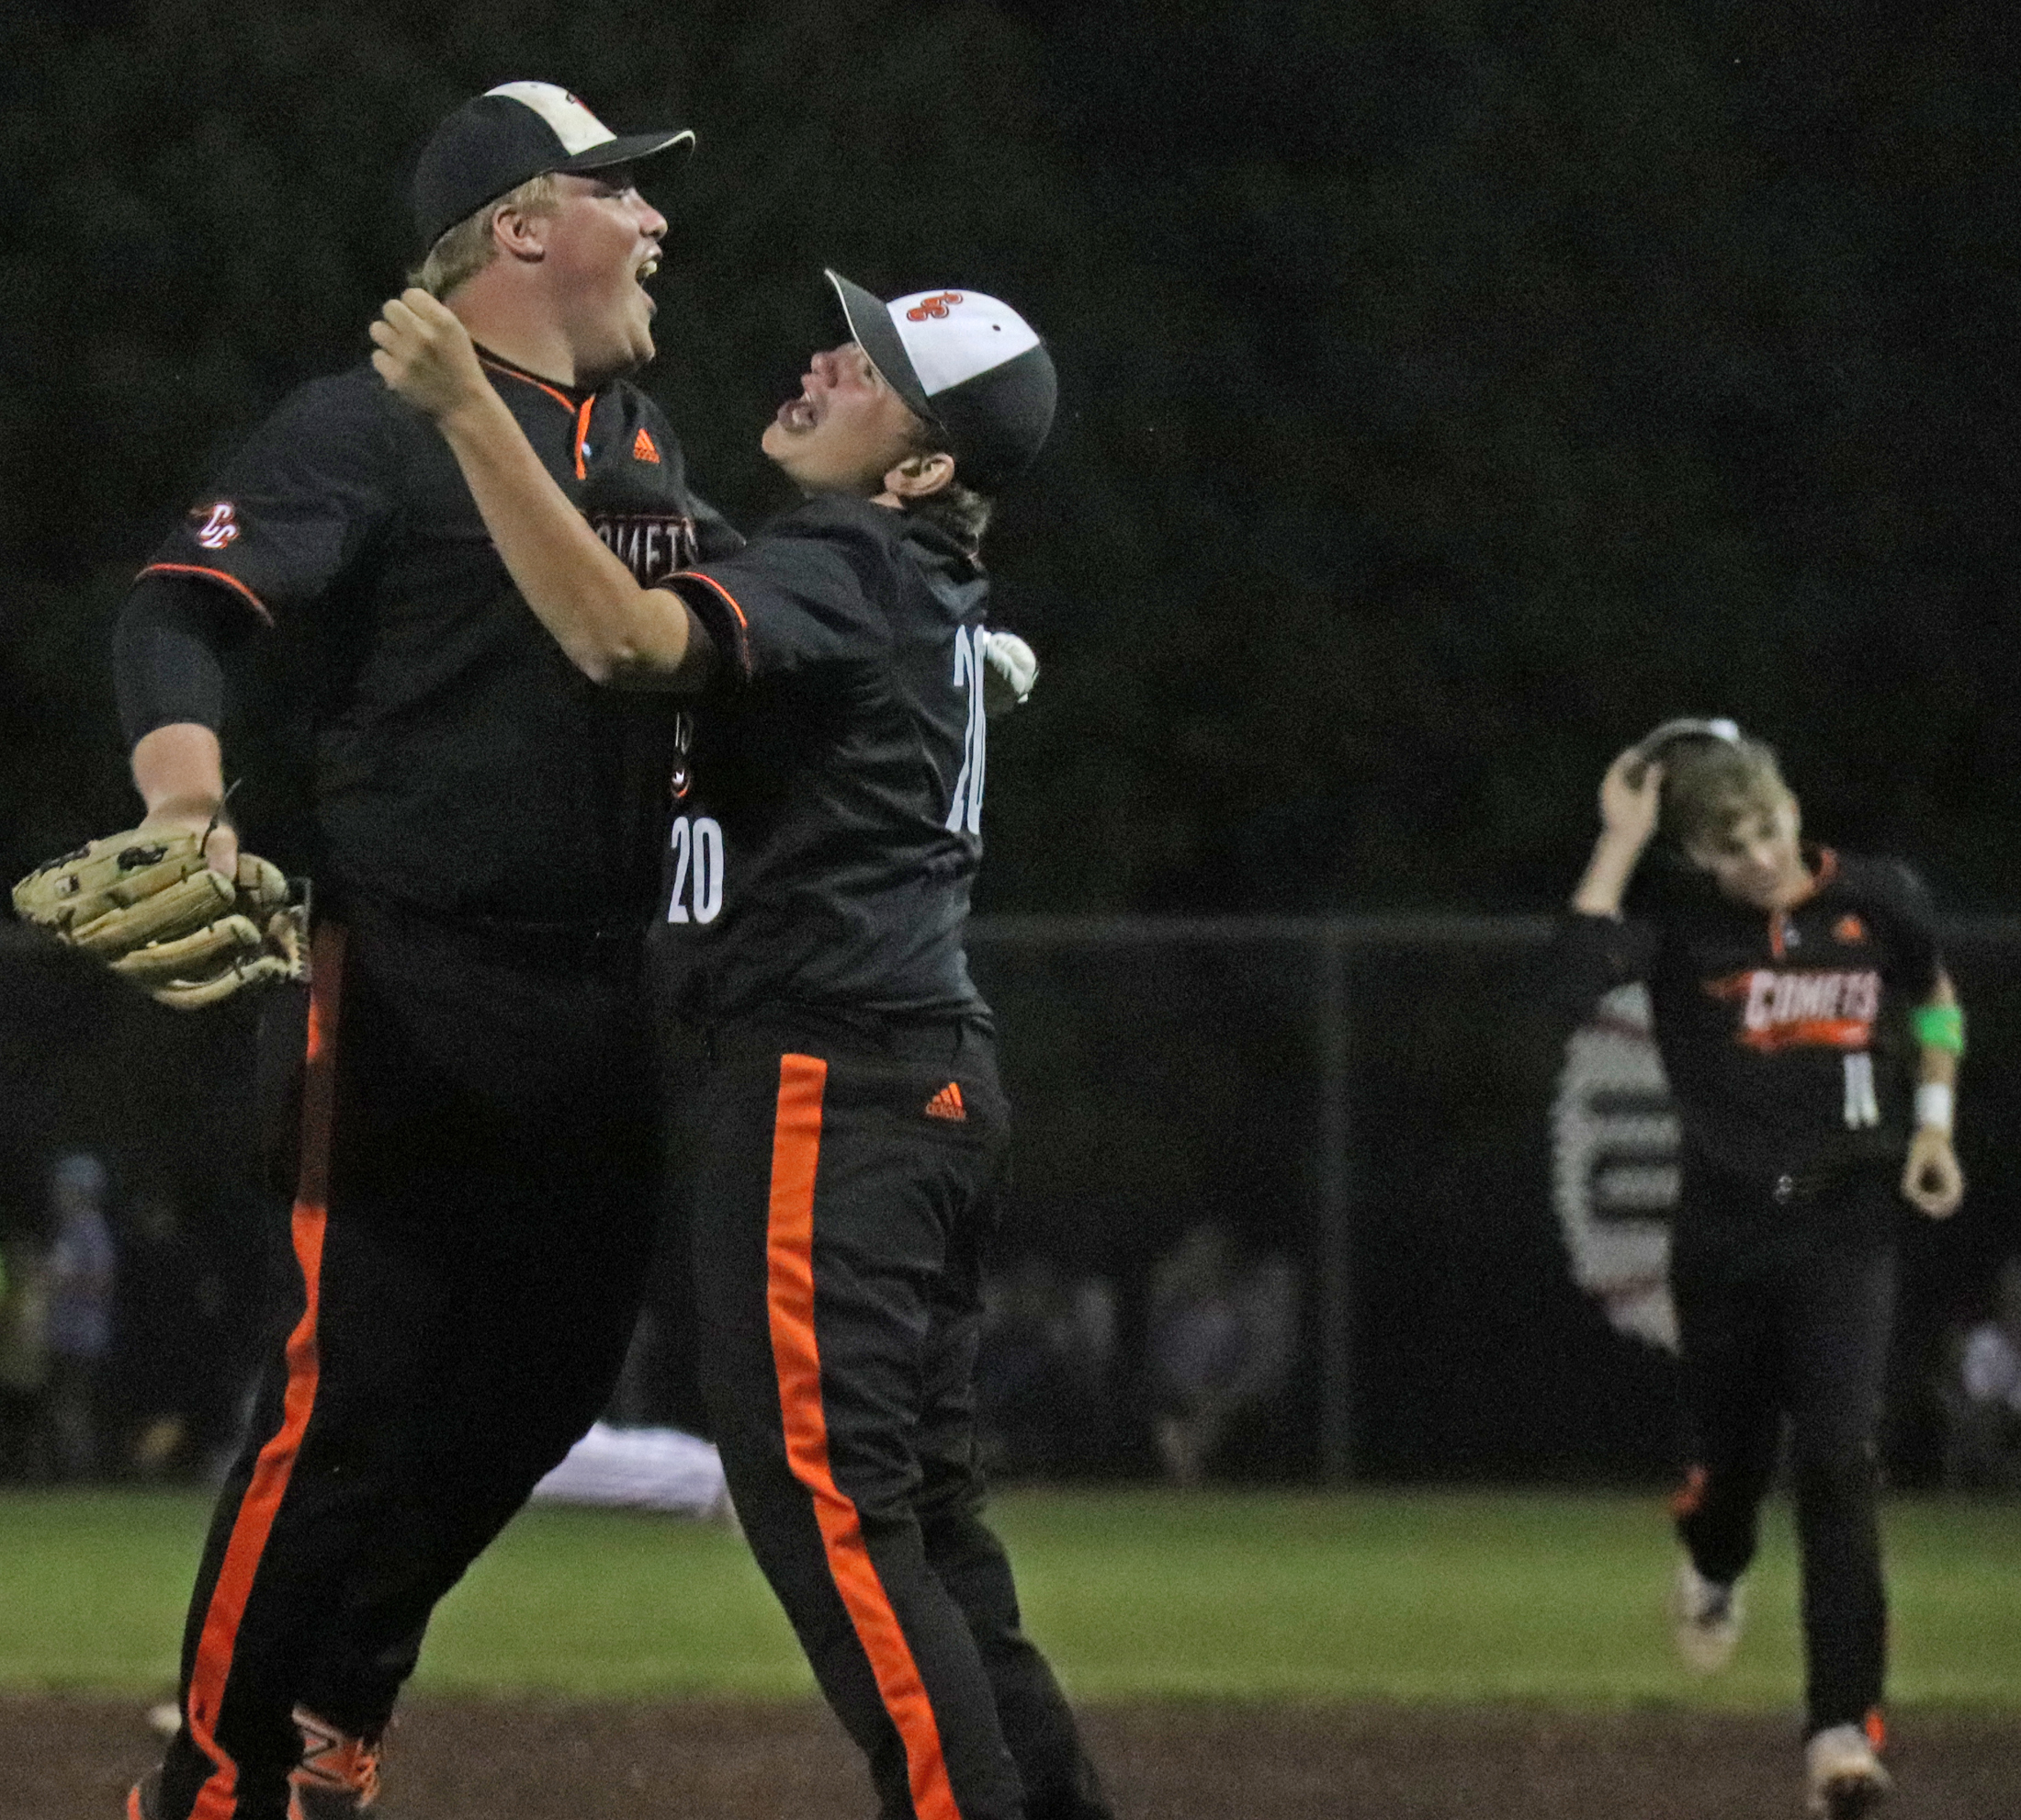 Comets defeat Go-Hawks, 7-3, for district title